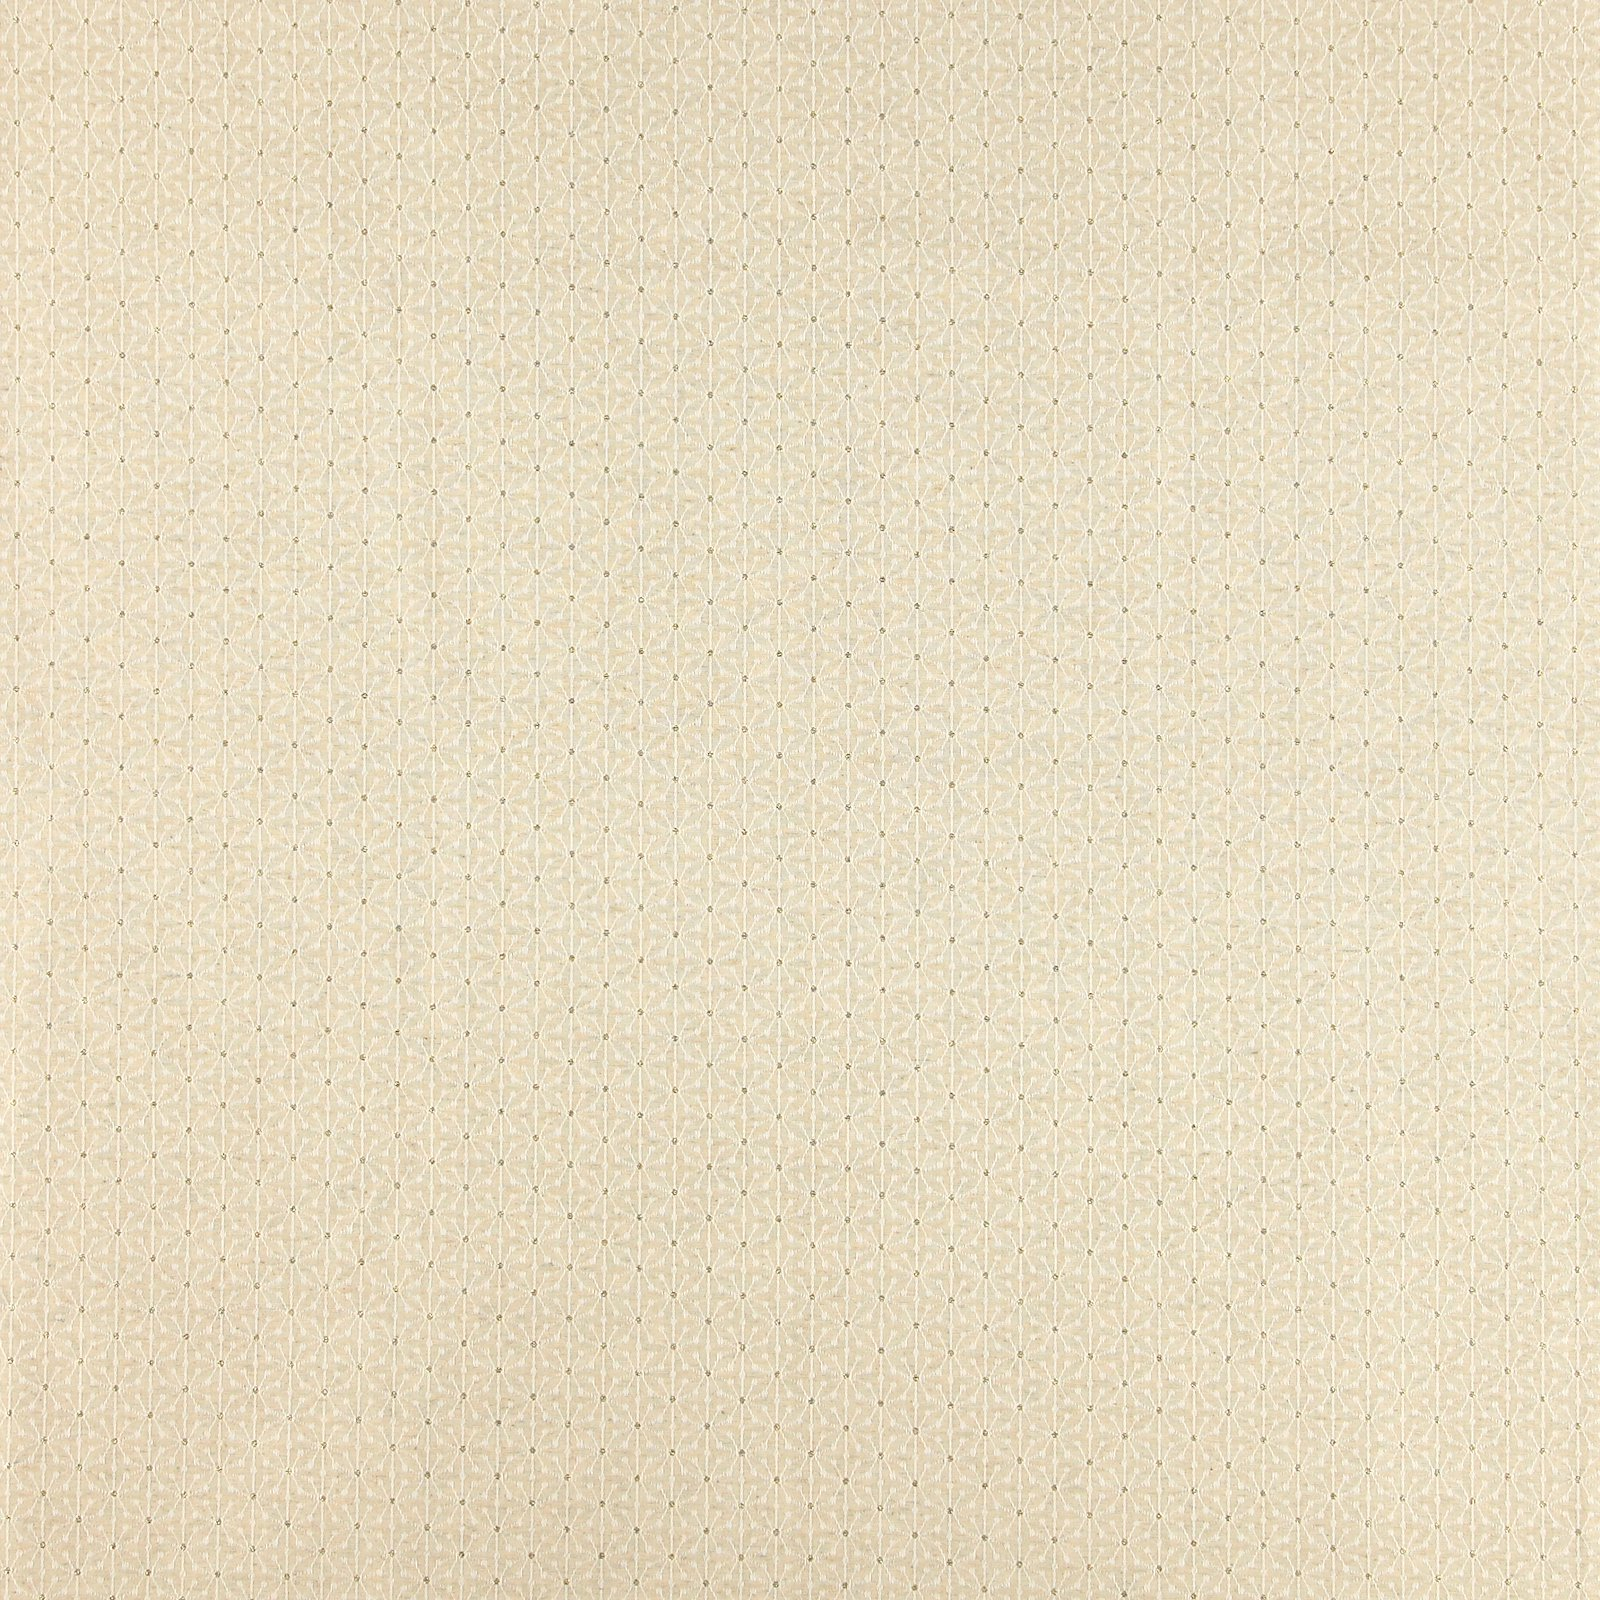 Jacquard yarn dyed sand w white flowers 803735_pack_sp